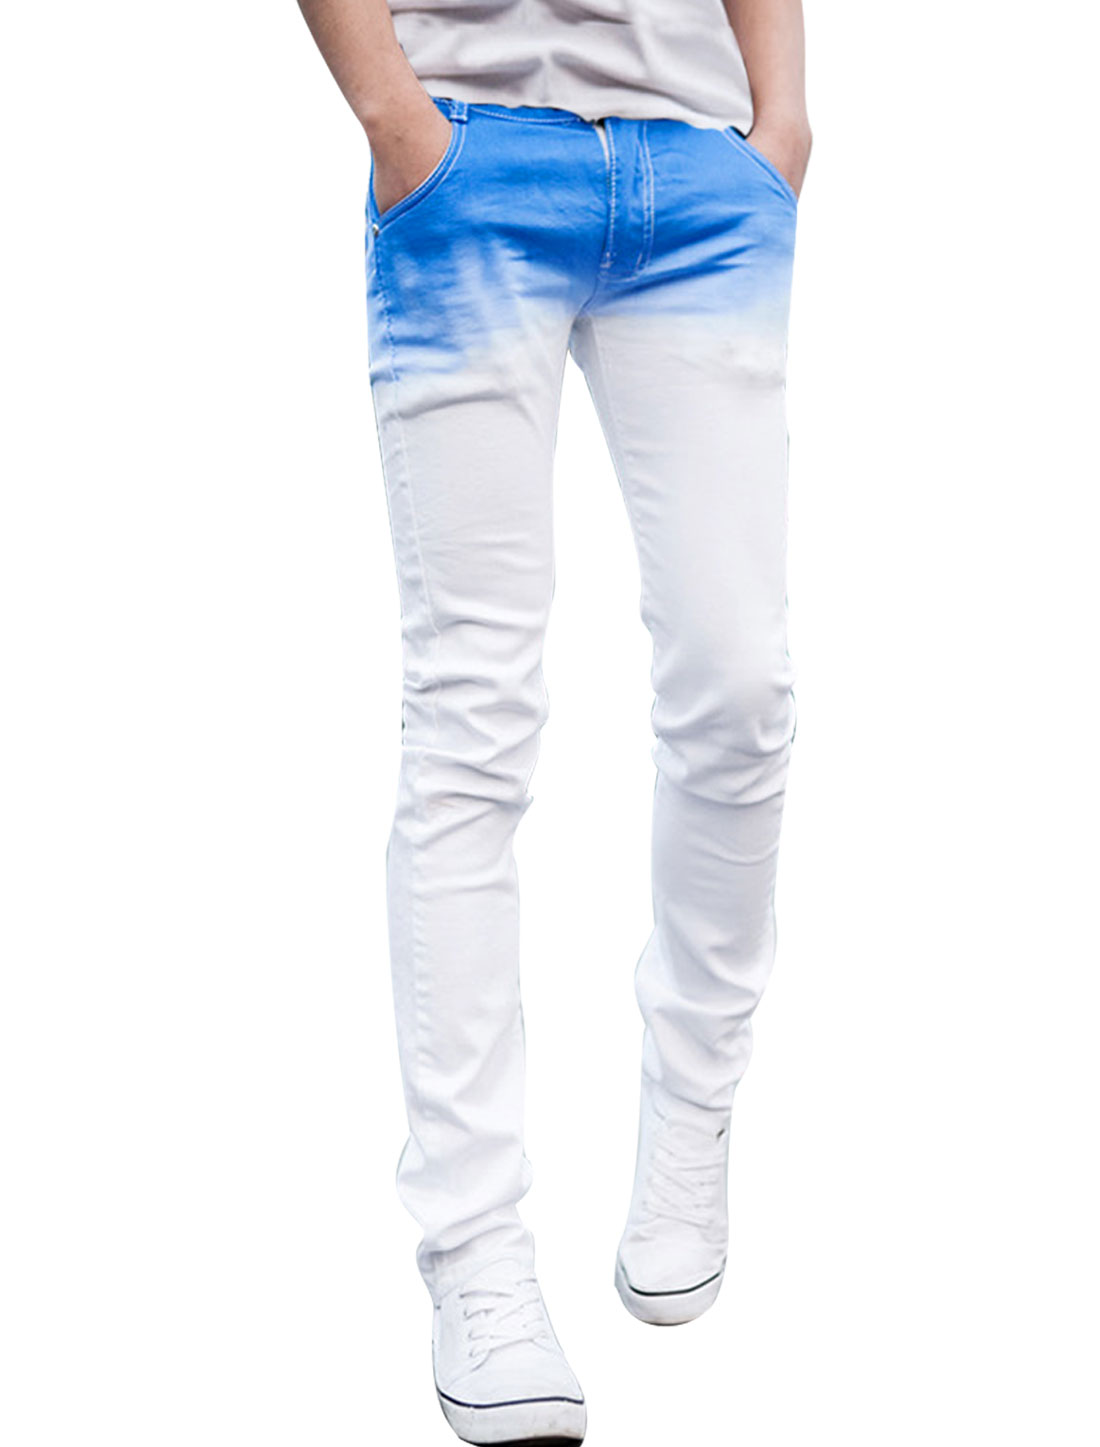 Men Zipper Fly Front Natural Waist Slim Fit Blue White Dip Dye Jeans Pants W28